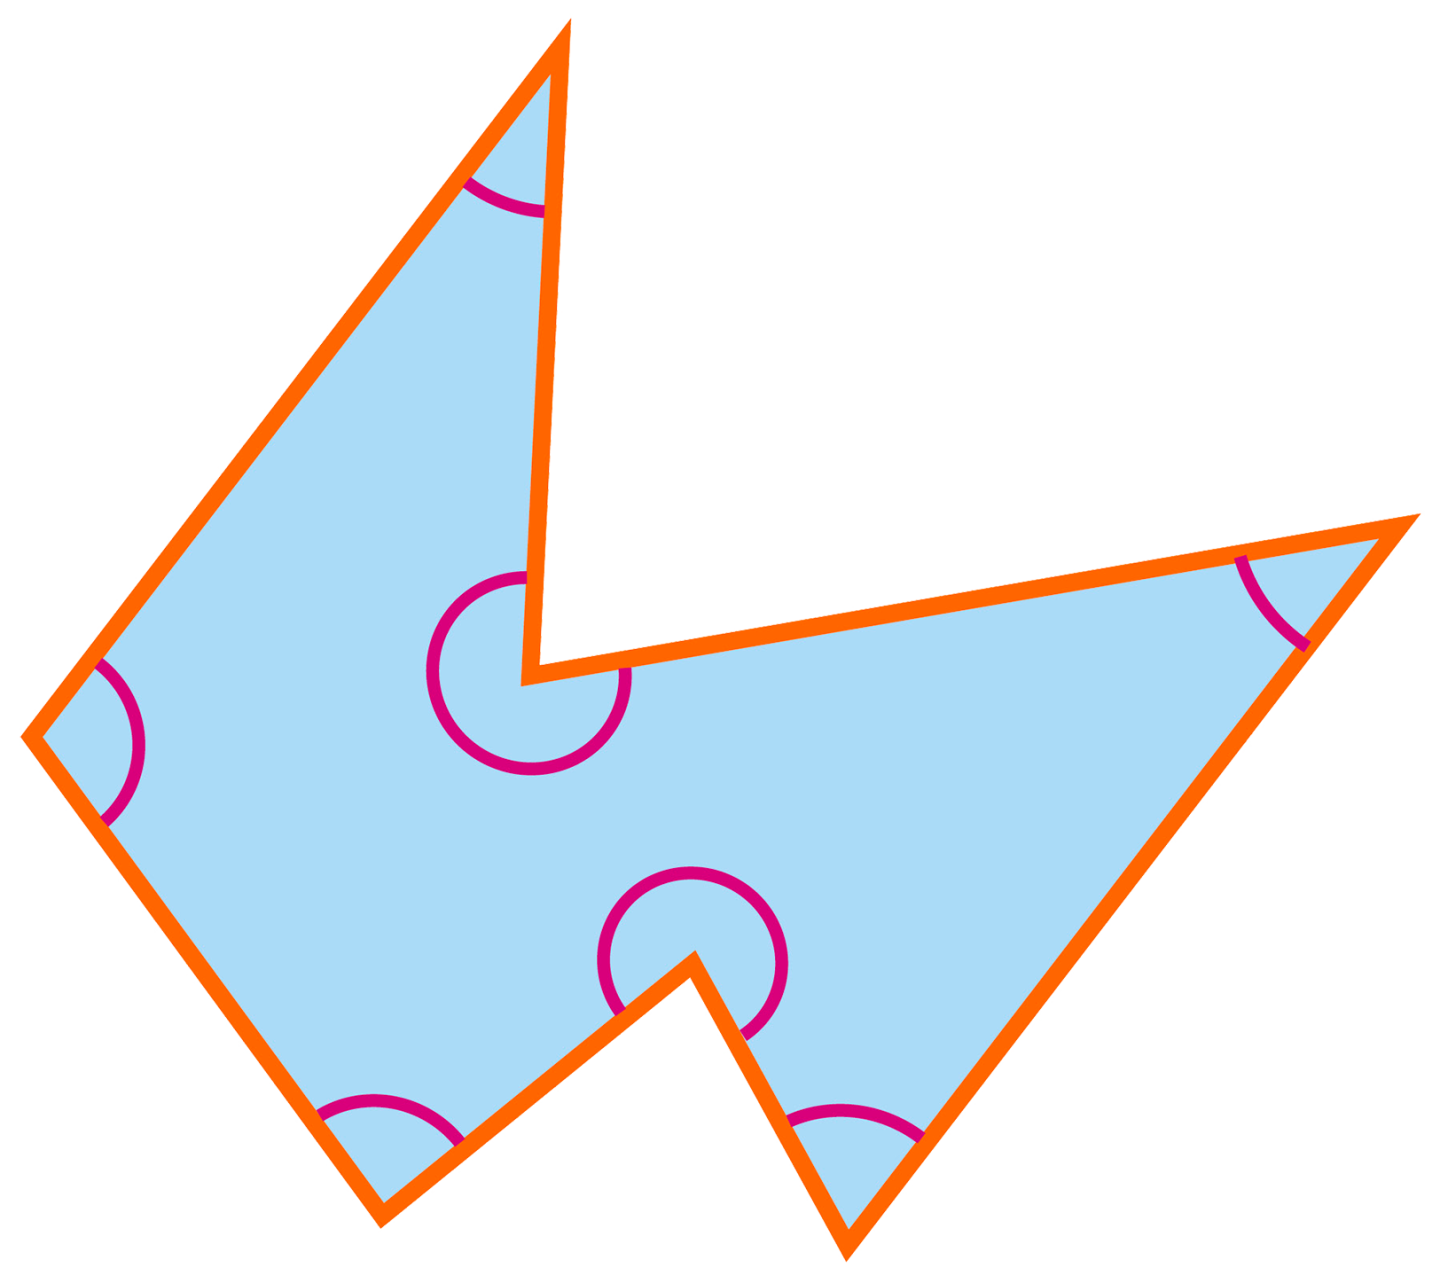 Hexagon clipart irregular. What is a heptagon